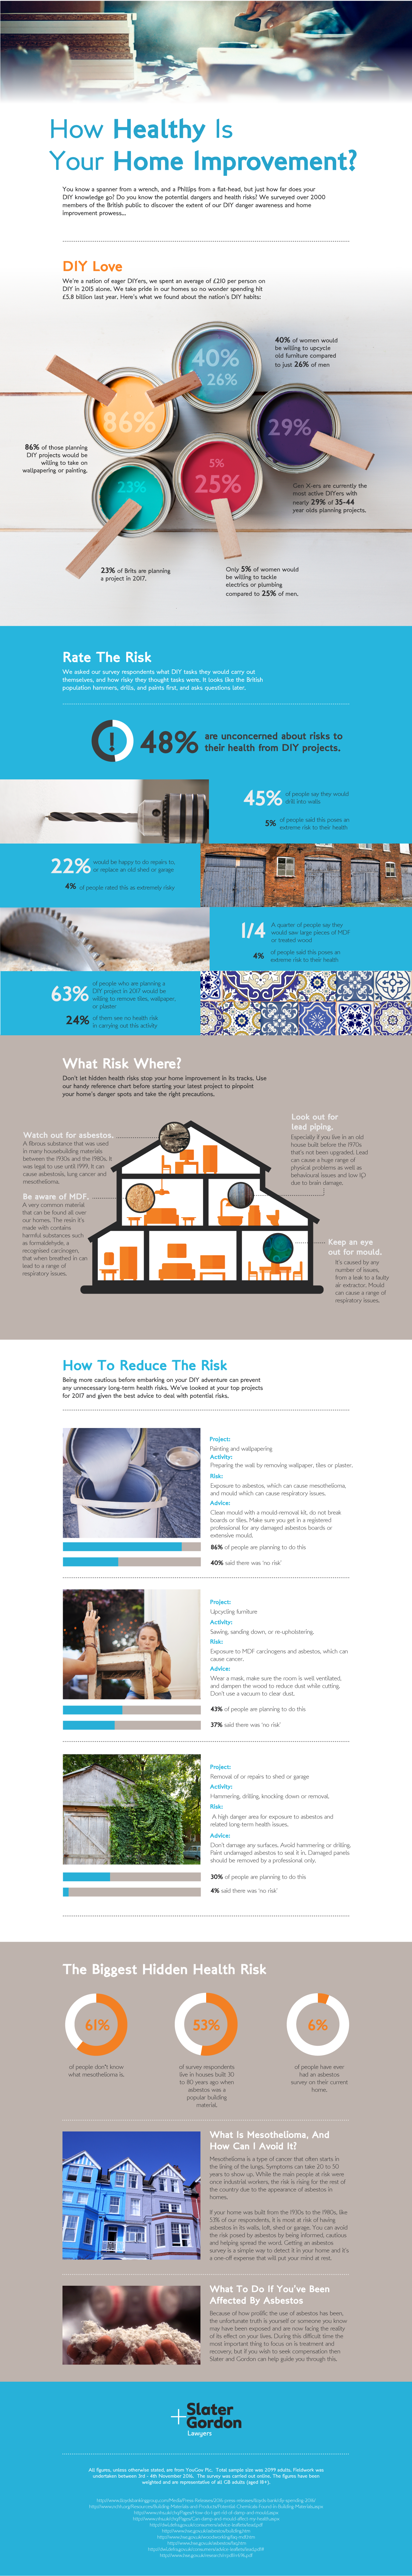 How Healthy is Your Home Improvements? Infographic